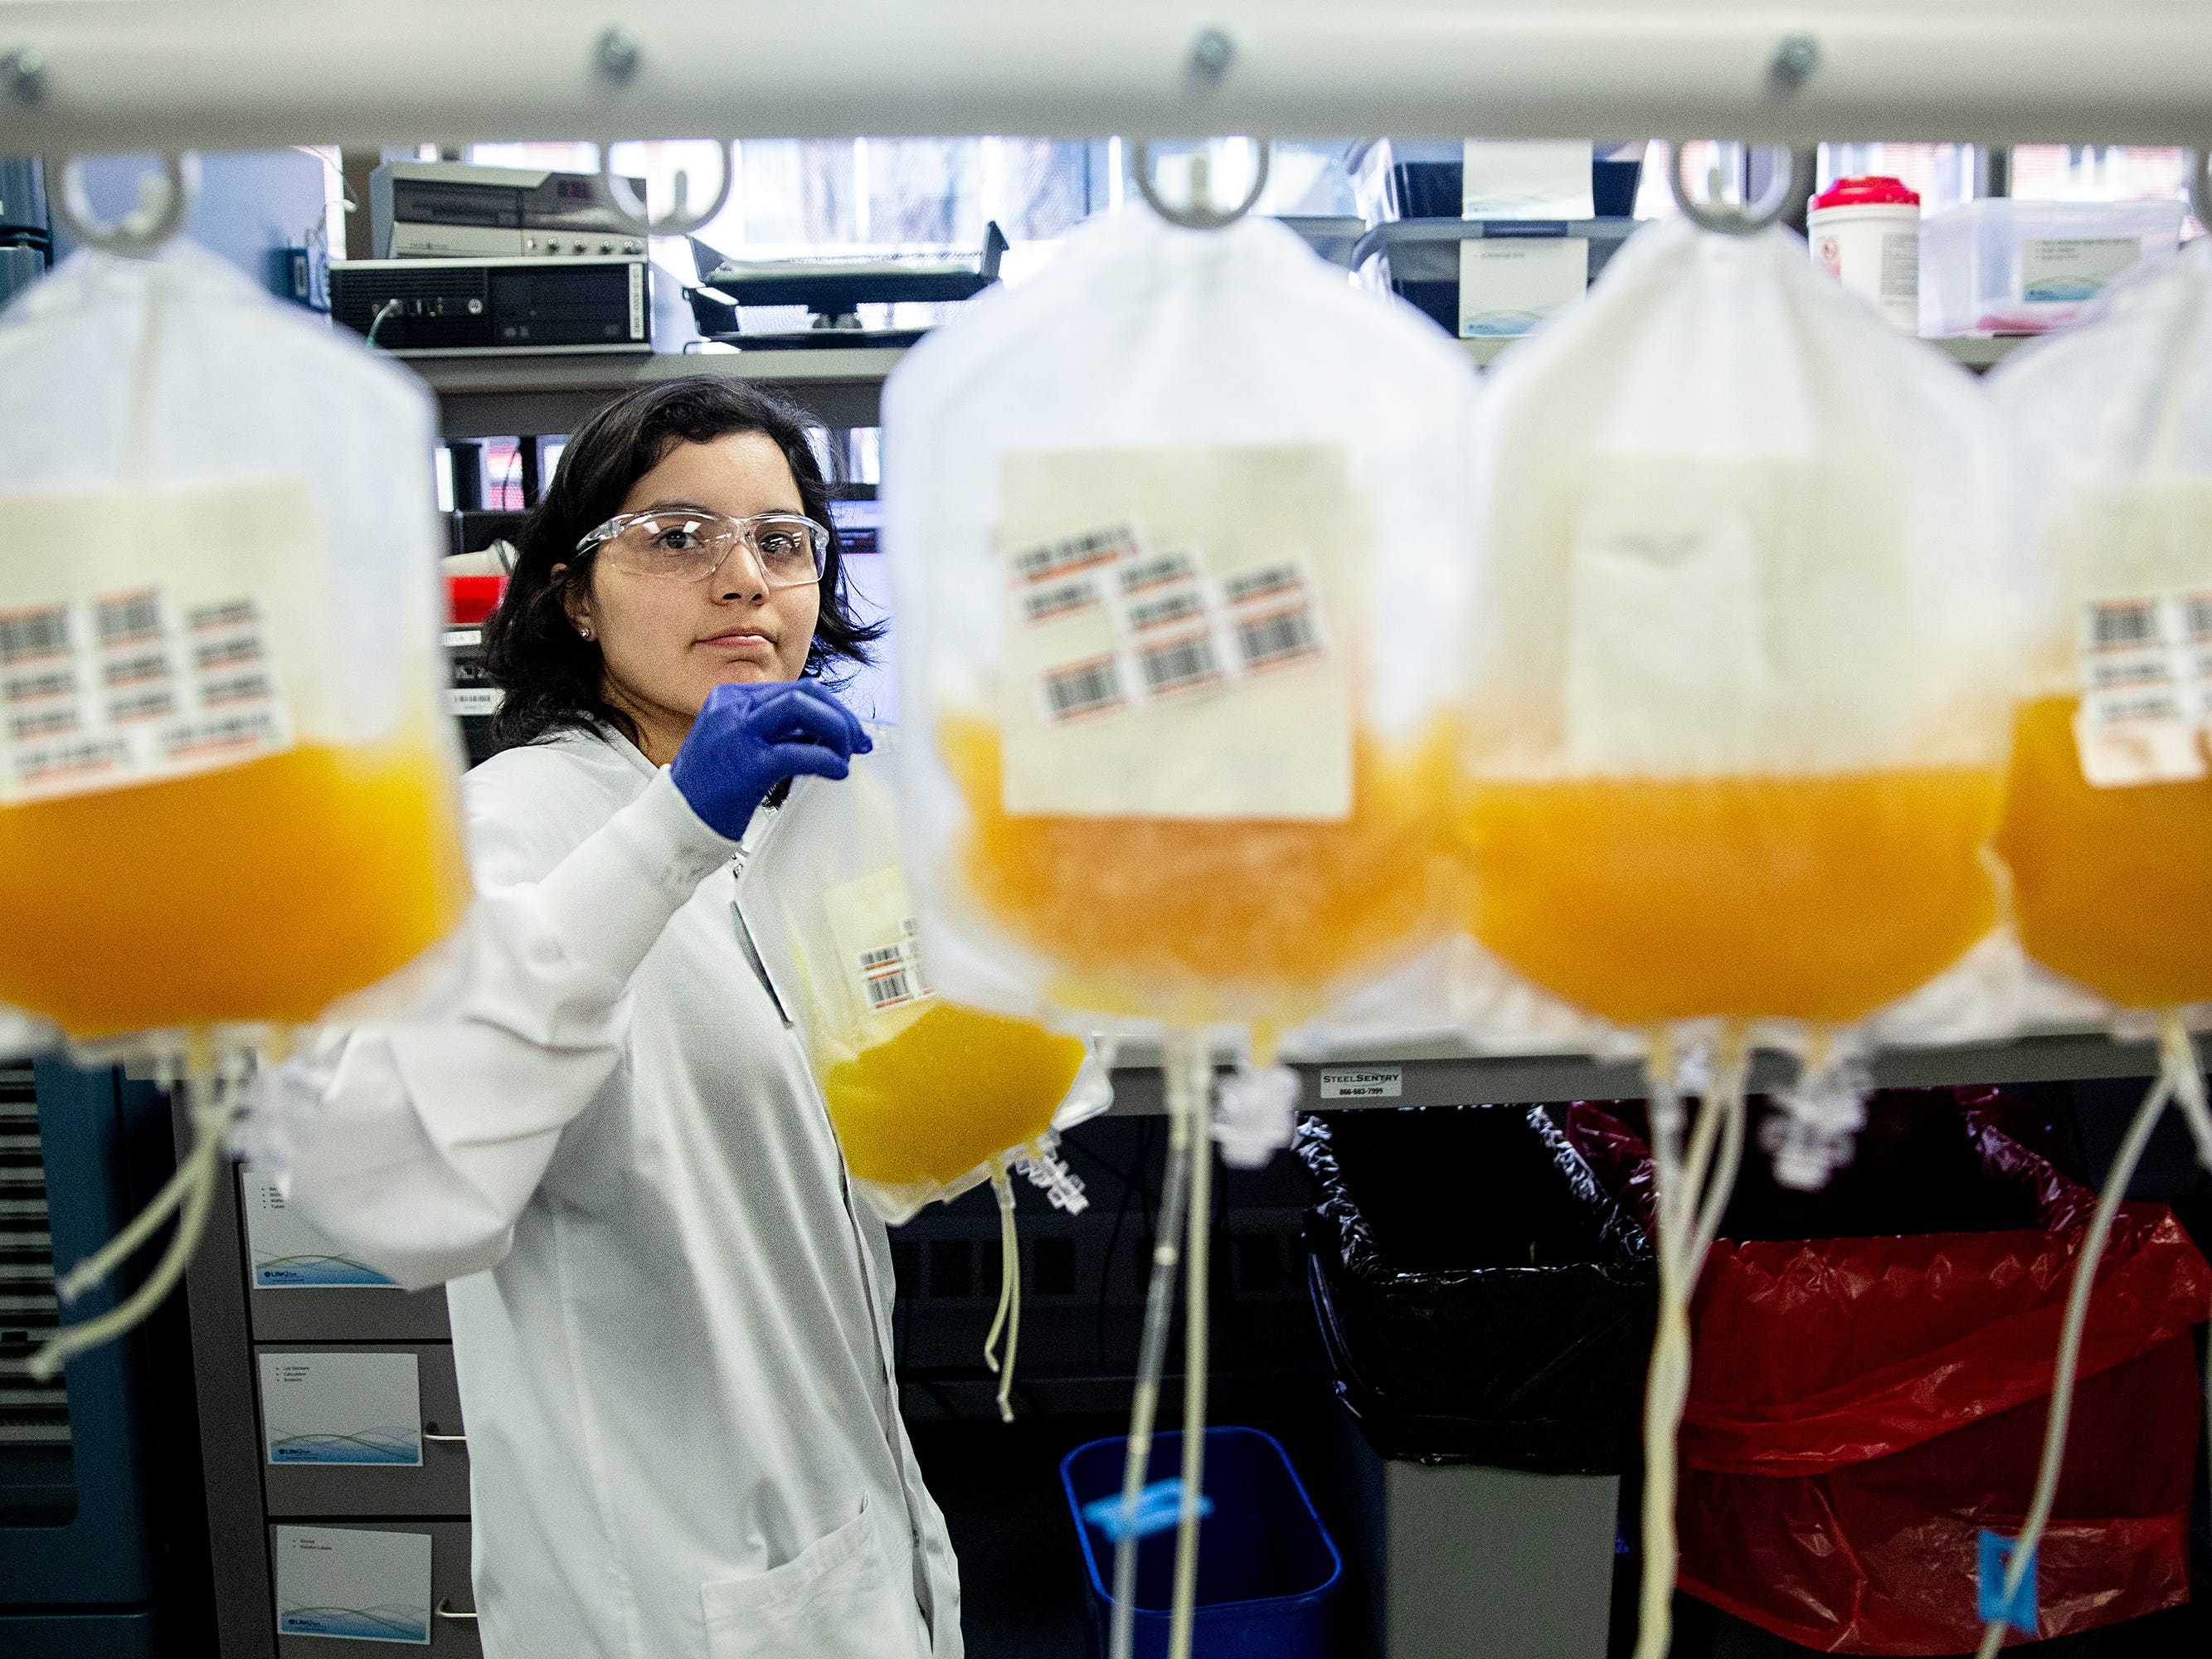 Reggeany Friesen, a component technician II at LifeServe Blood Center, labels materials while working in the blood center's lab on Thursday, Jan. 10, 2019, in Des Moines. Under Iowa's new tax law many of the supplies LifeServe uses are now taxed causing them to pay more than a million dollars in taxes annually.